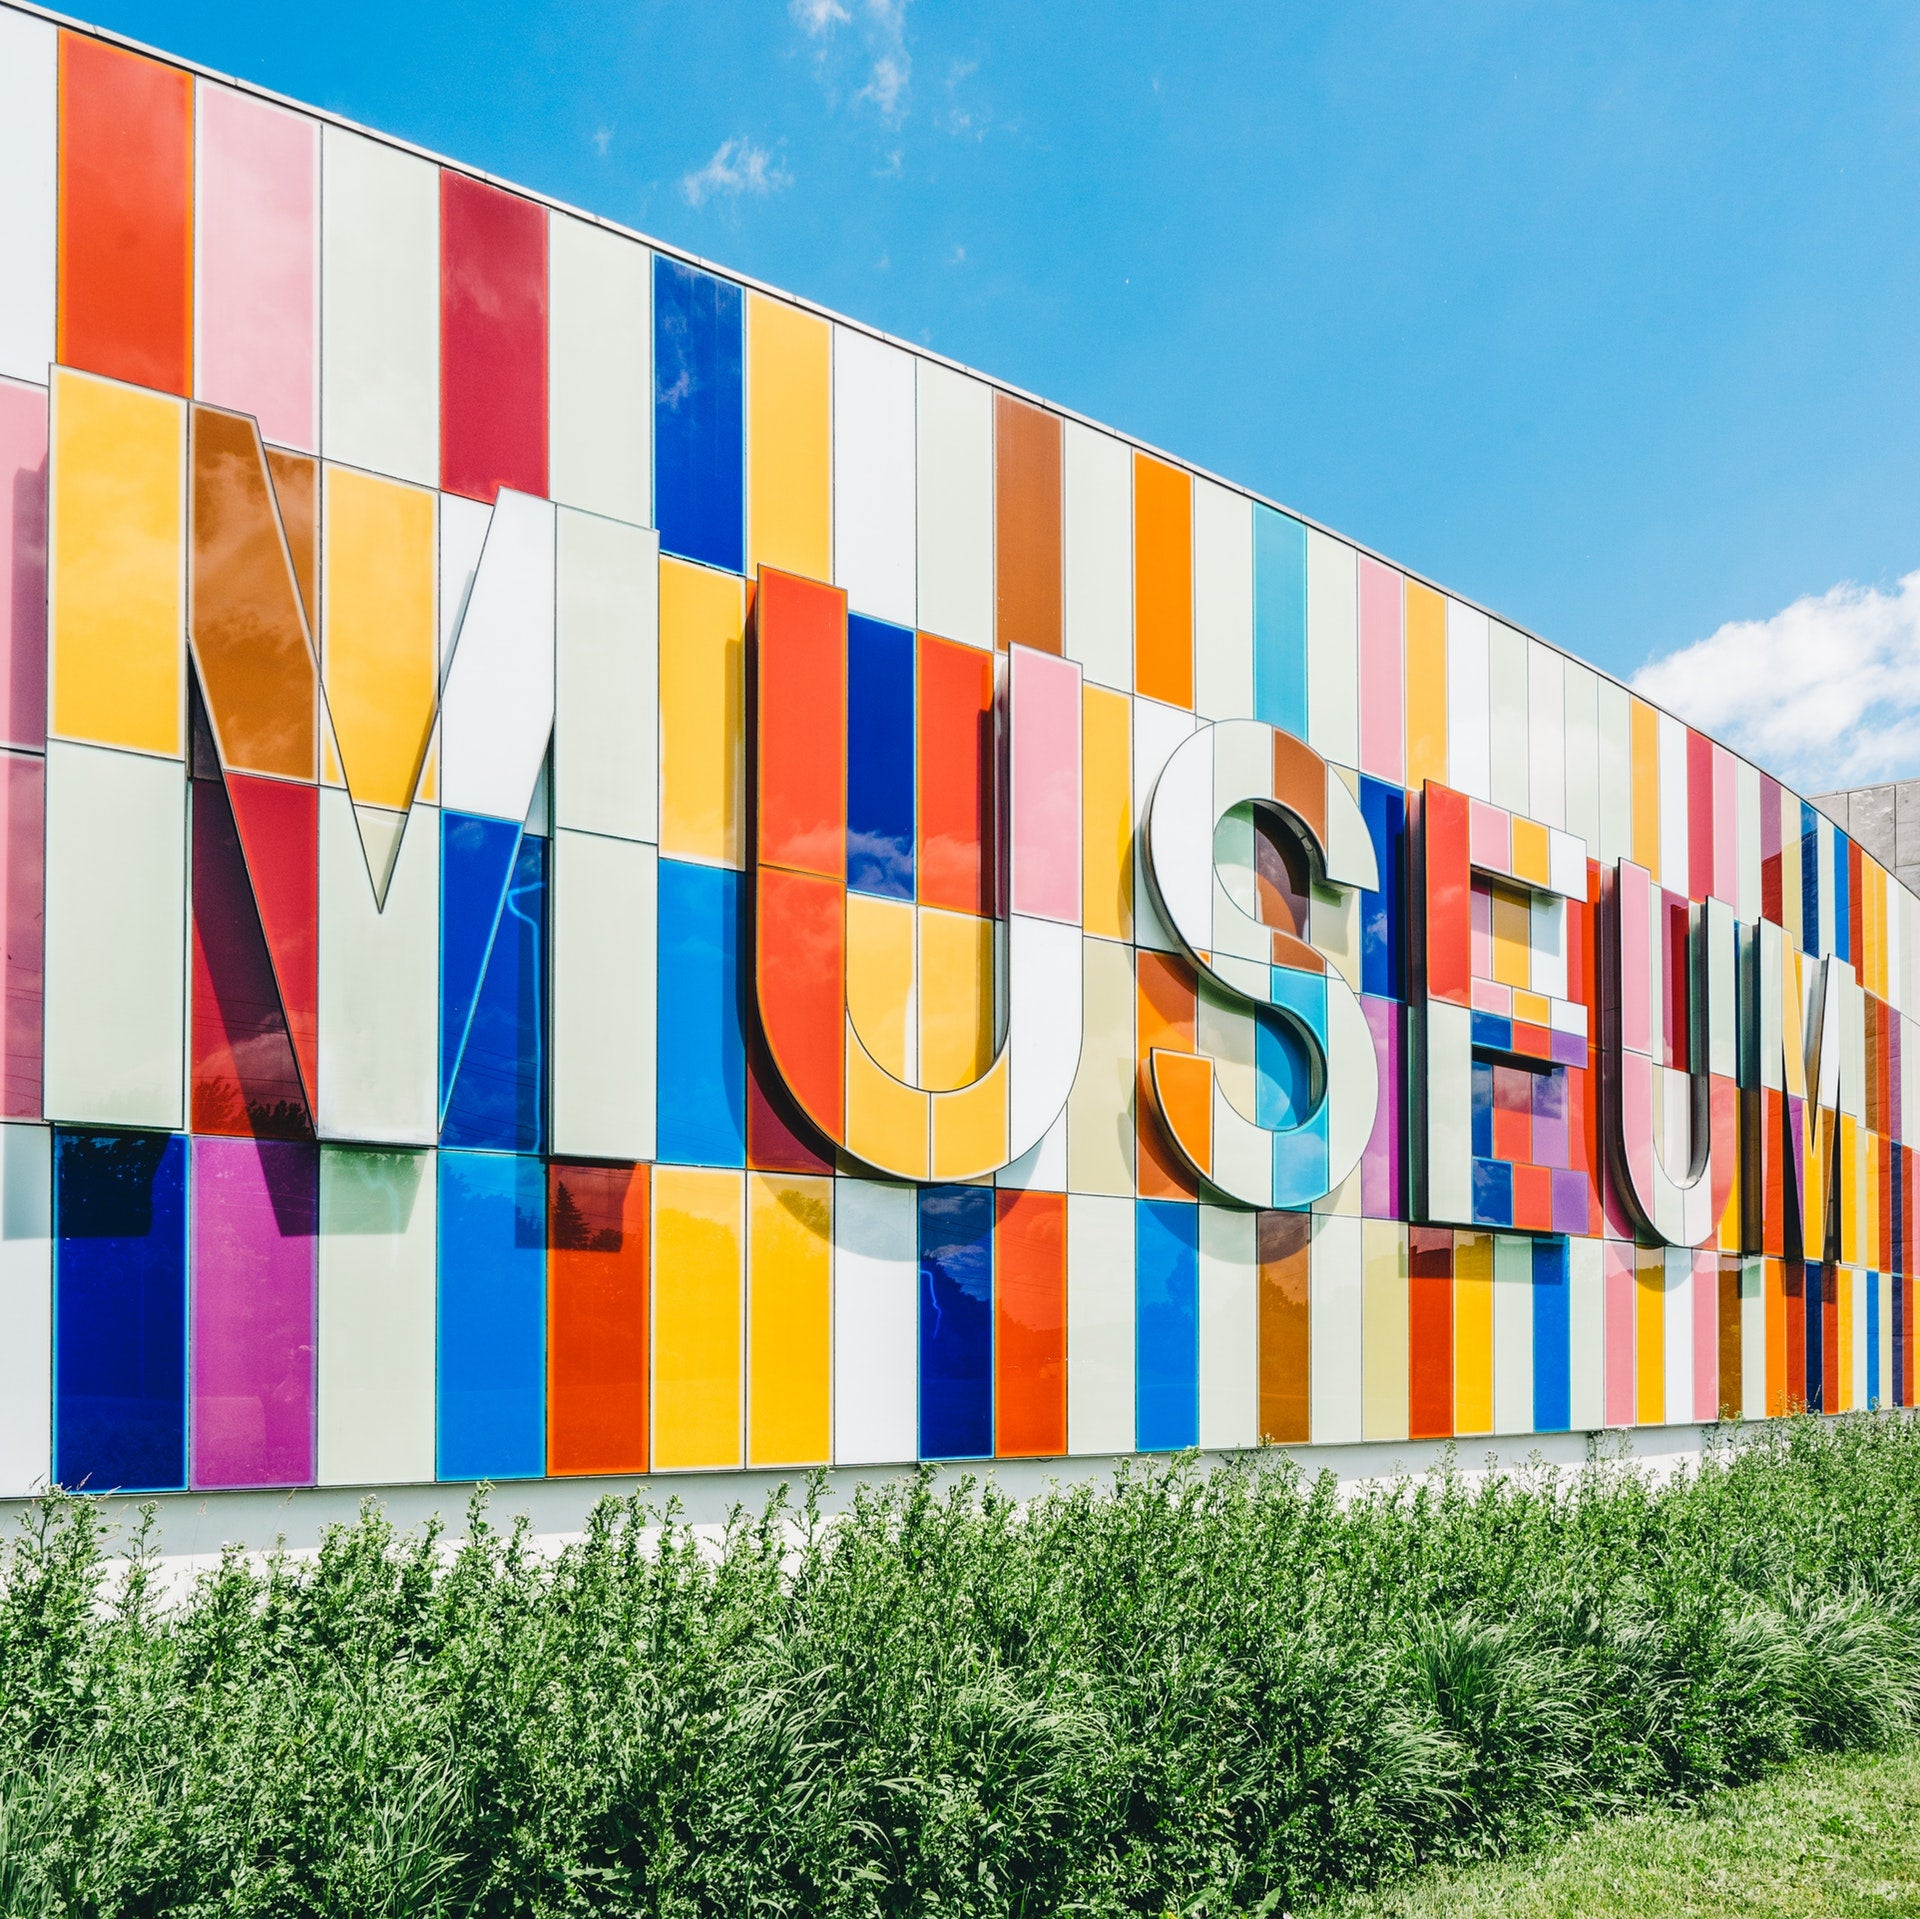 Guide to Latino & Hispanic Museums in the US - So You Can Celebrate Latino Culture & History